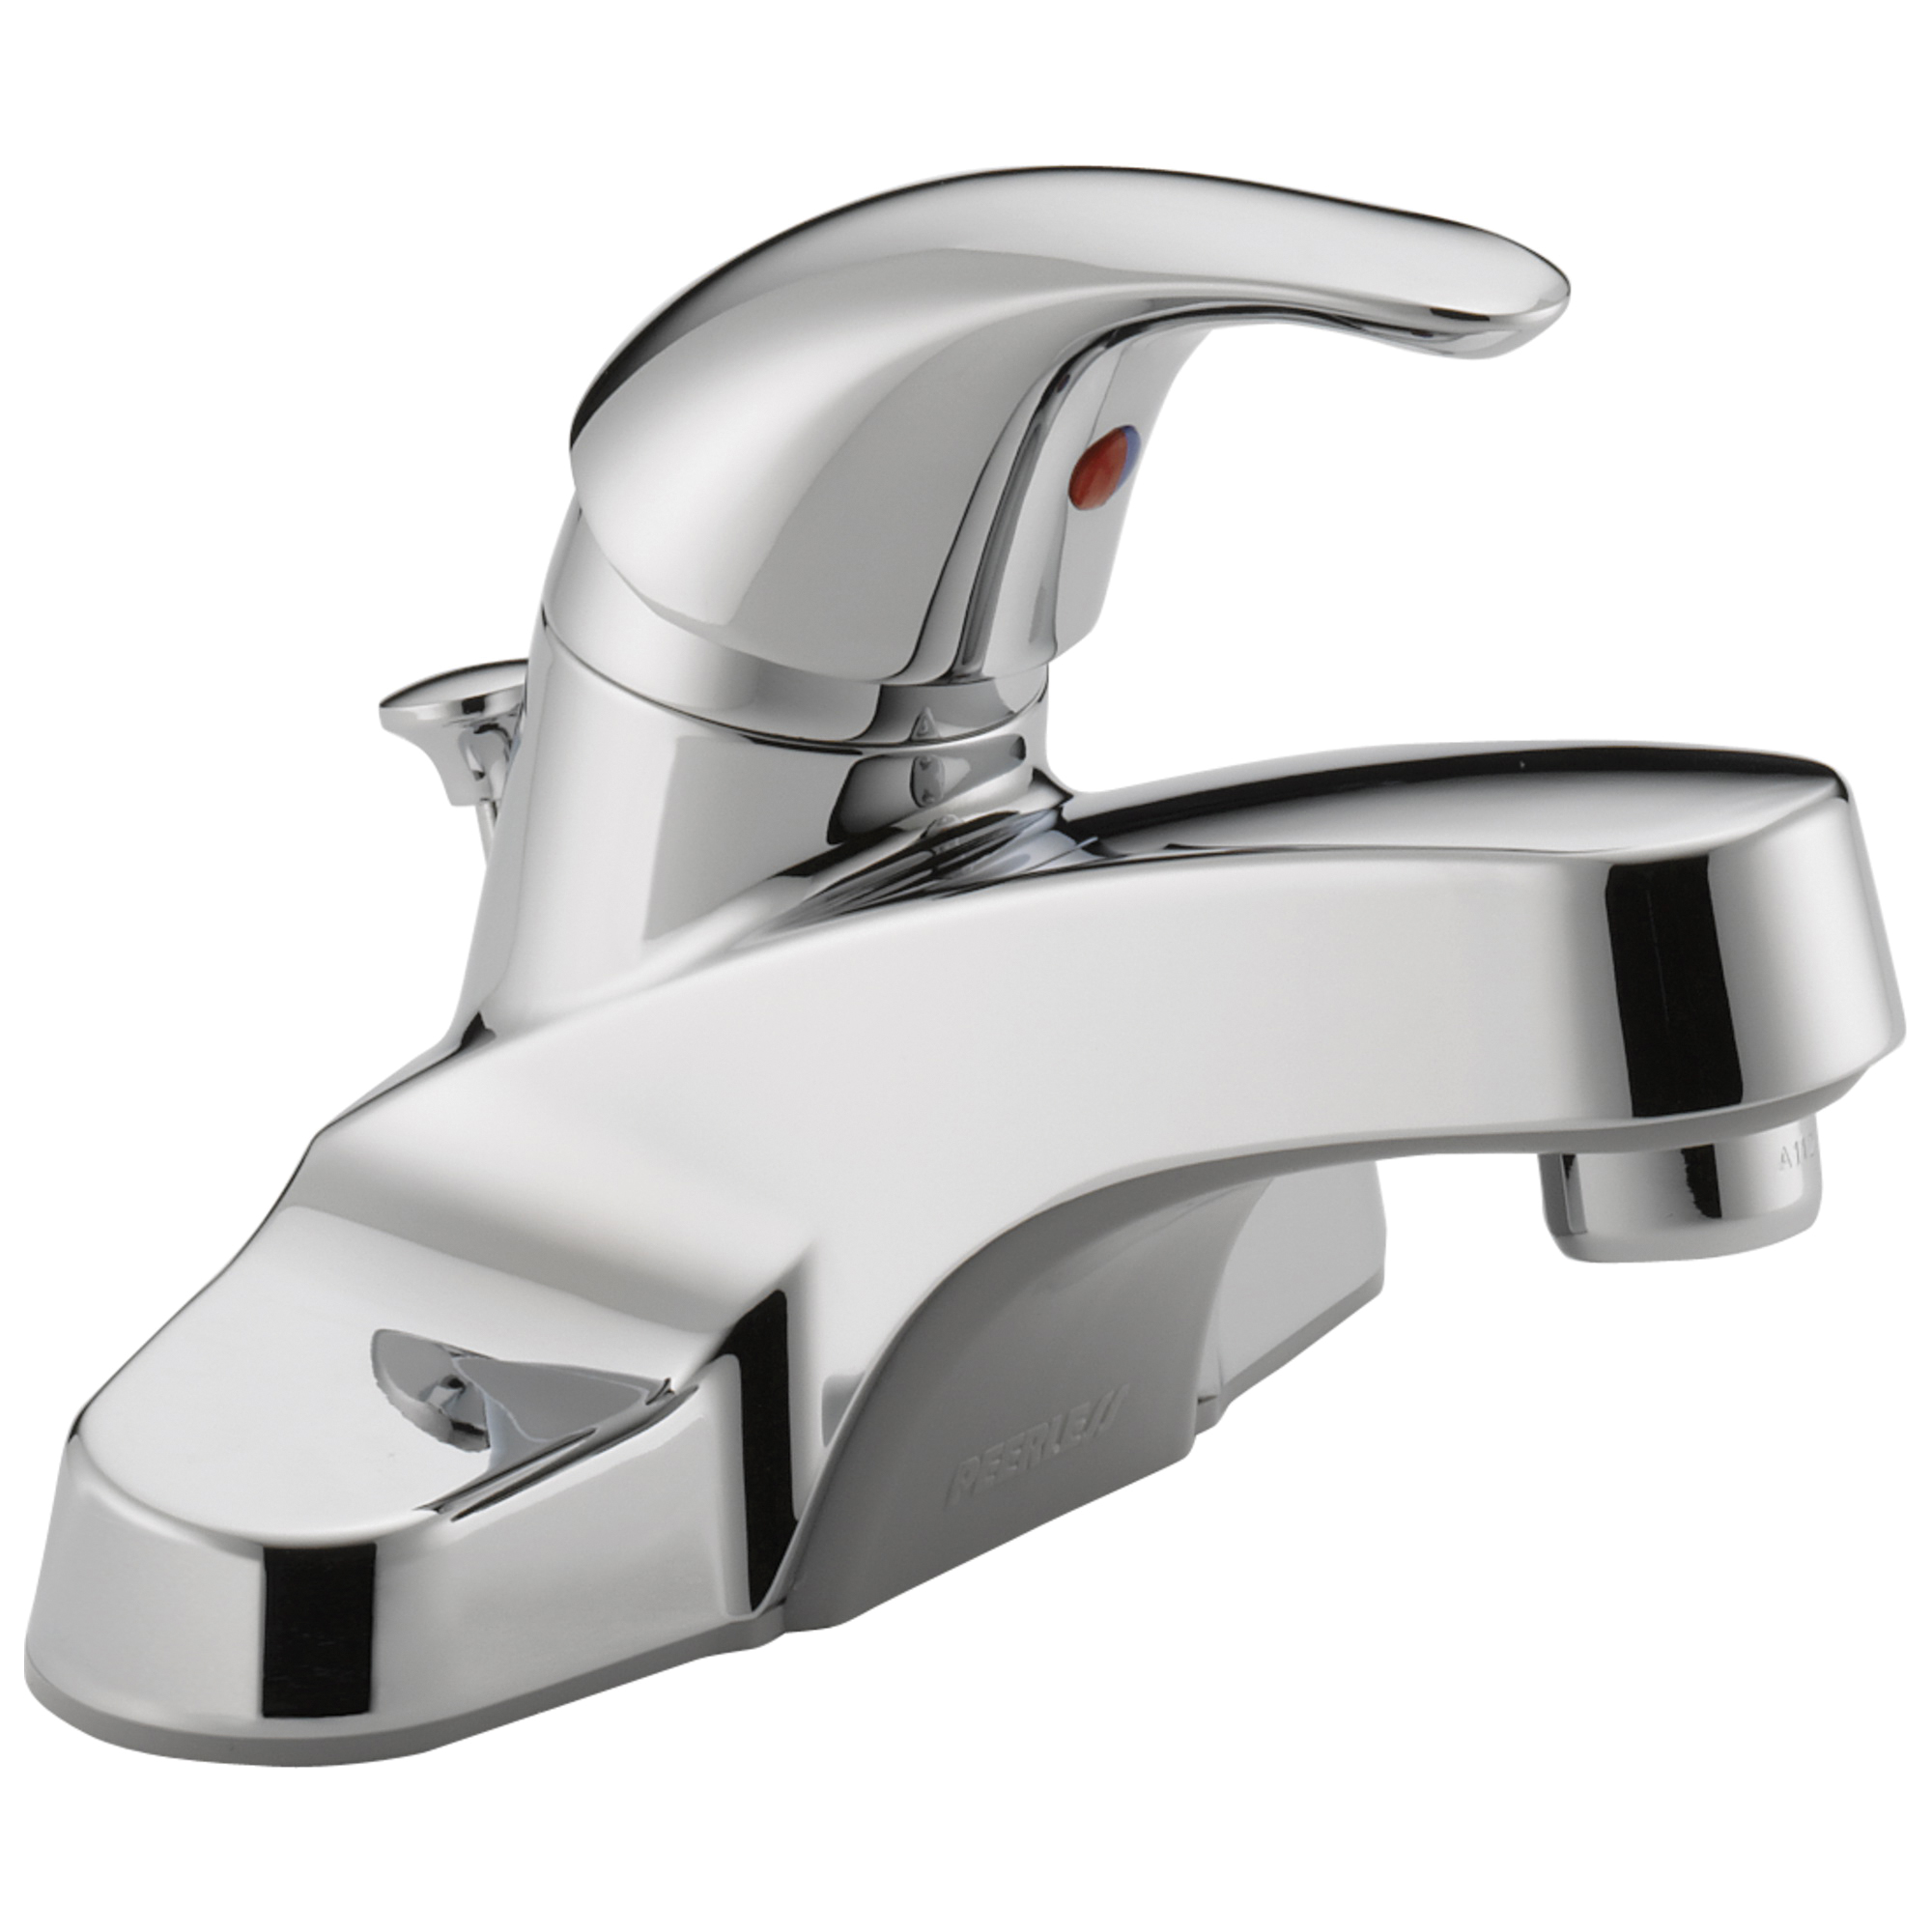 Peerless® P136LF-M Centerset Lavatory Faucet, Chrome Plated, 1 Handles, Metal Pop-Up Drain, 1.2 gpm